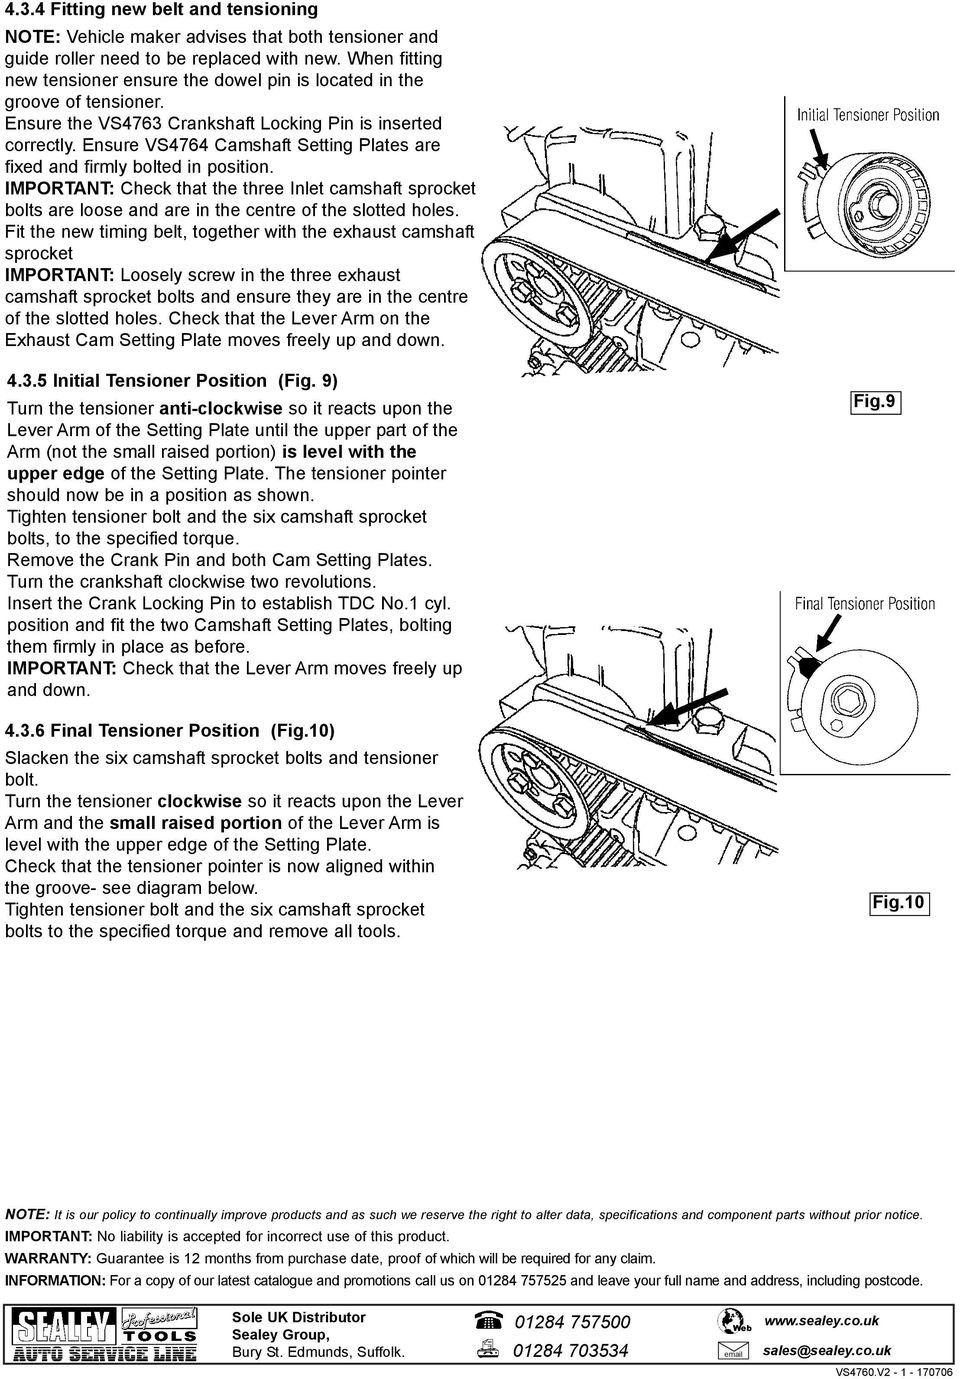 Vs4760v2 Instructions For Diesel Engine Setting Locking Tool Kit Lexus 1uz Wiring Diagram Ensure Vs4764 Camshaft Plates Are Fixed And Firmly Bolted In Position Important Check